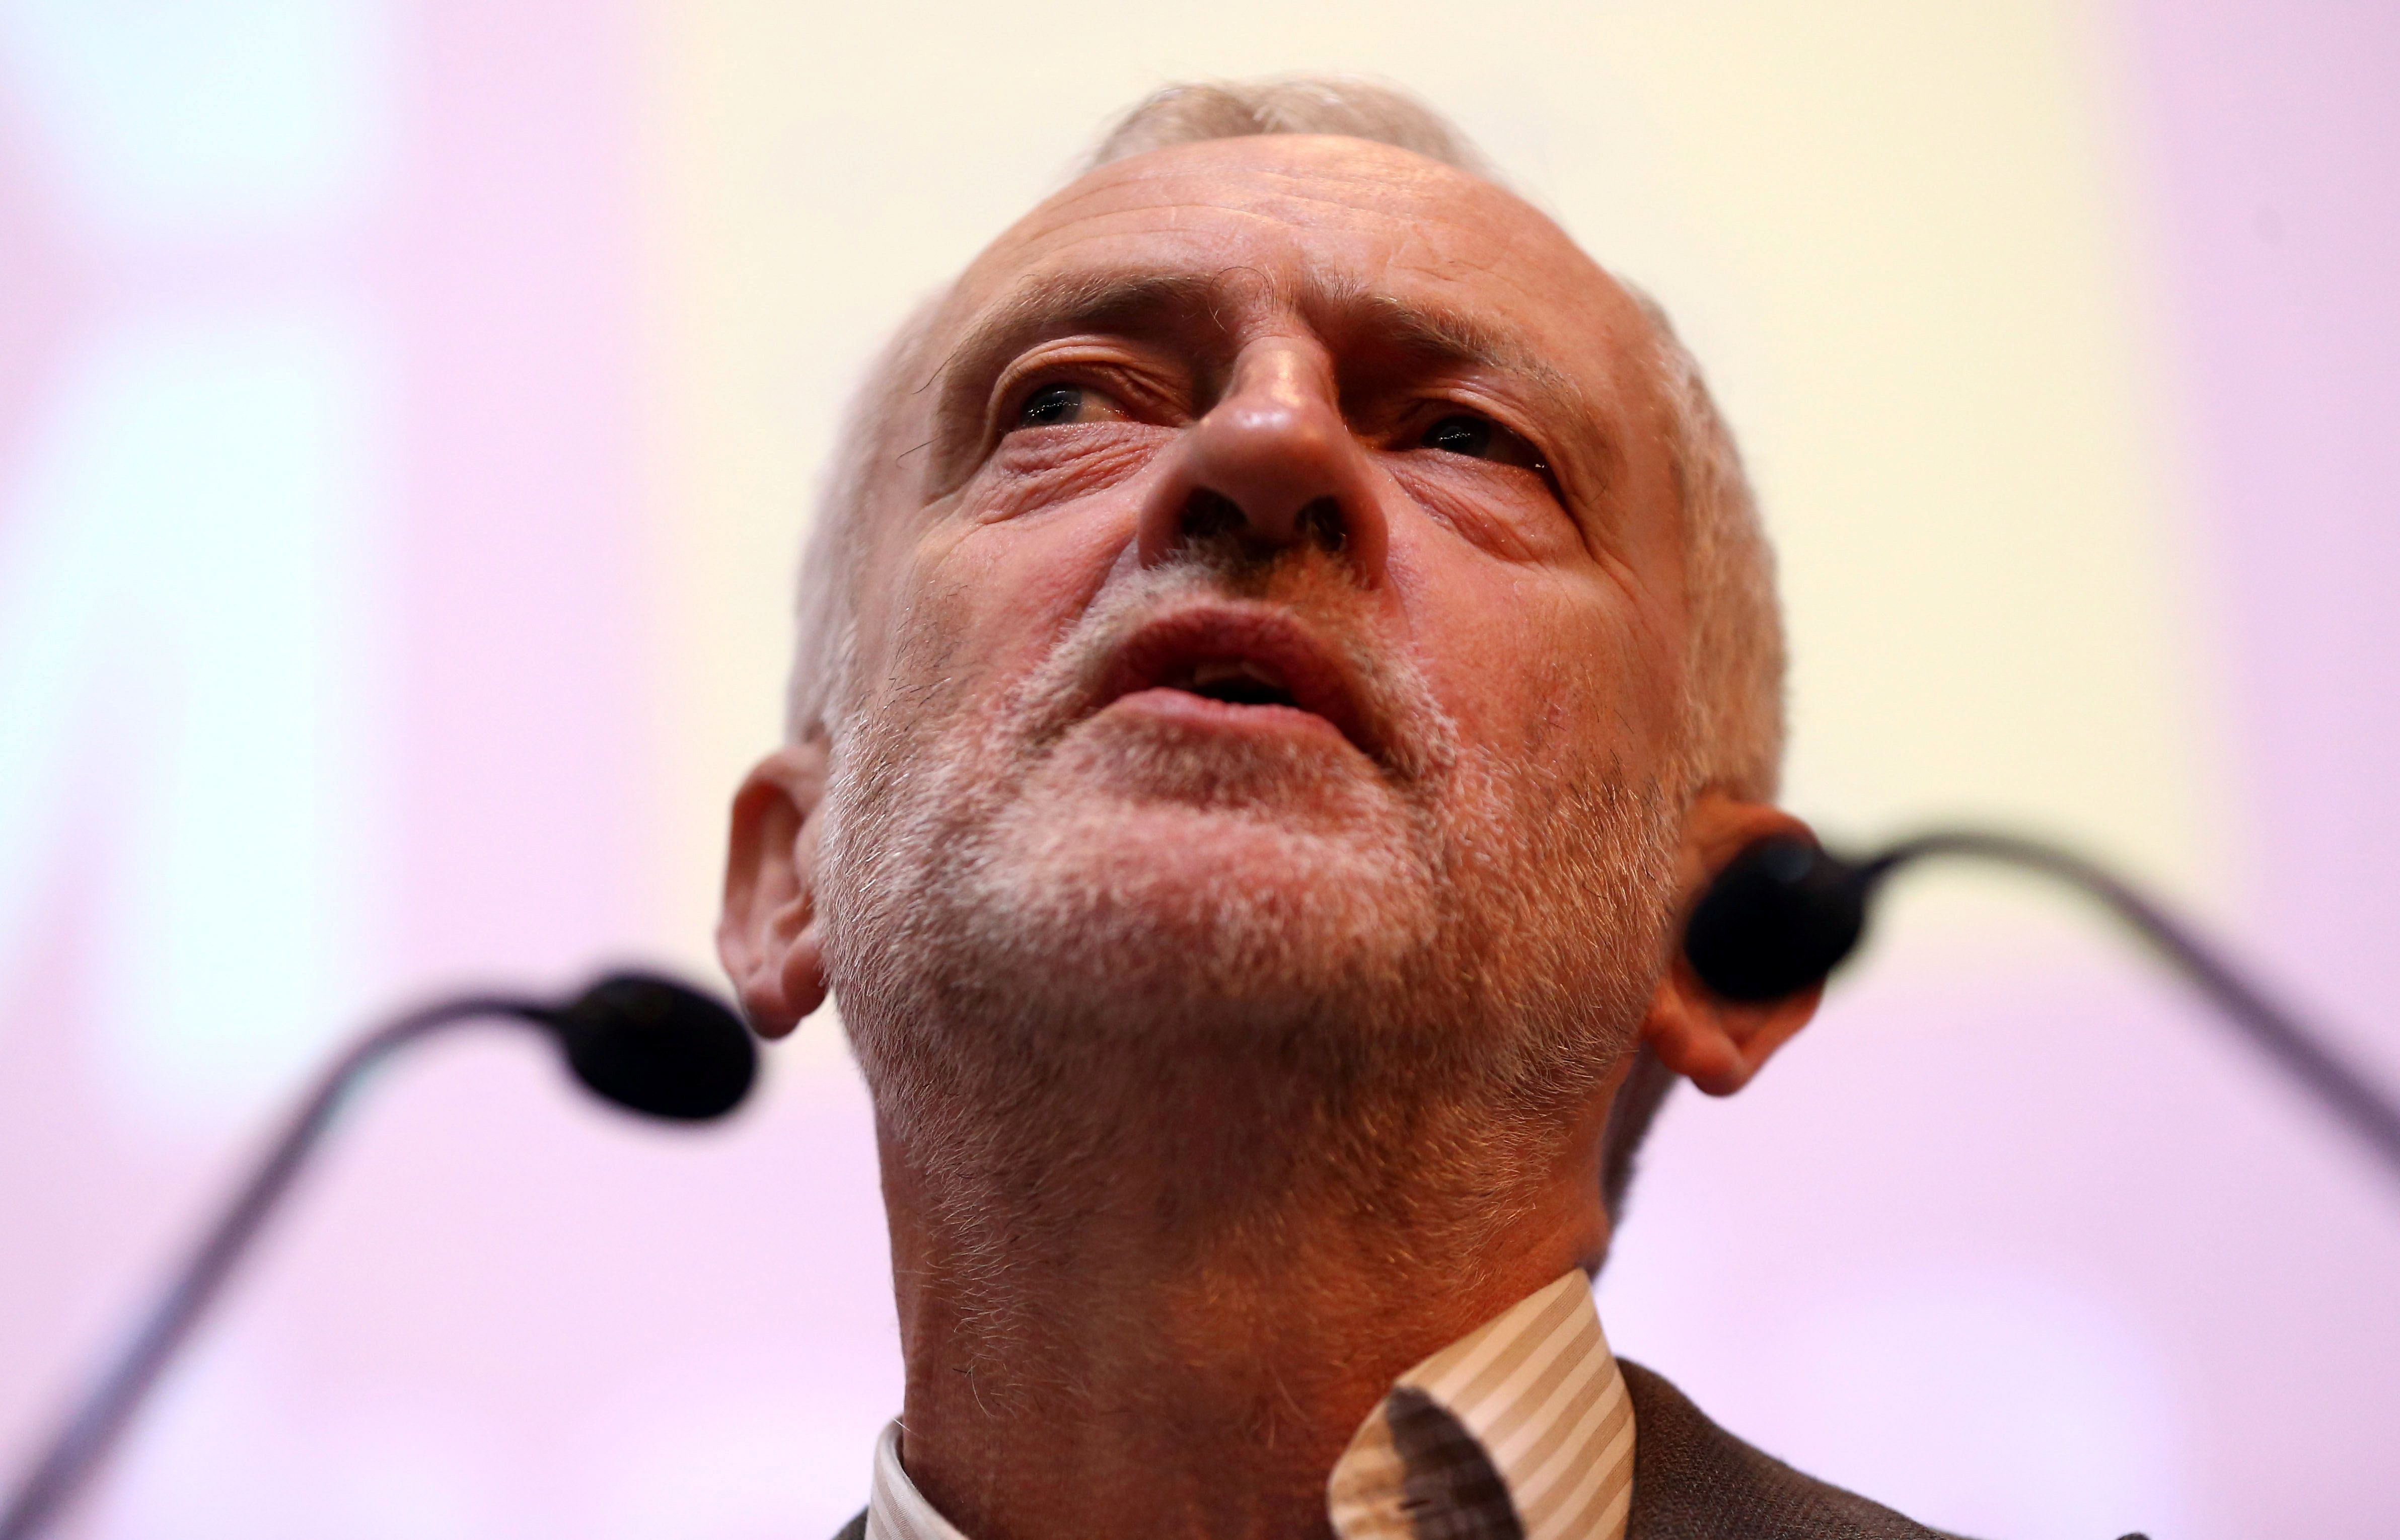 Jeremy Corbyn Says Women's Rights Will Be 'Front And Centre' Of Everything Labour